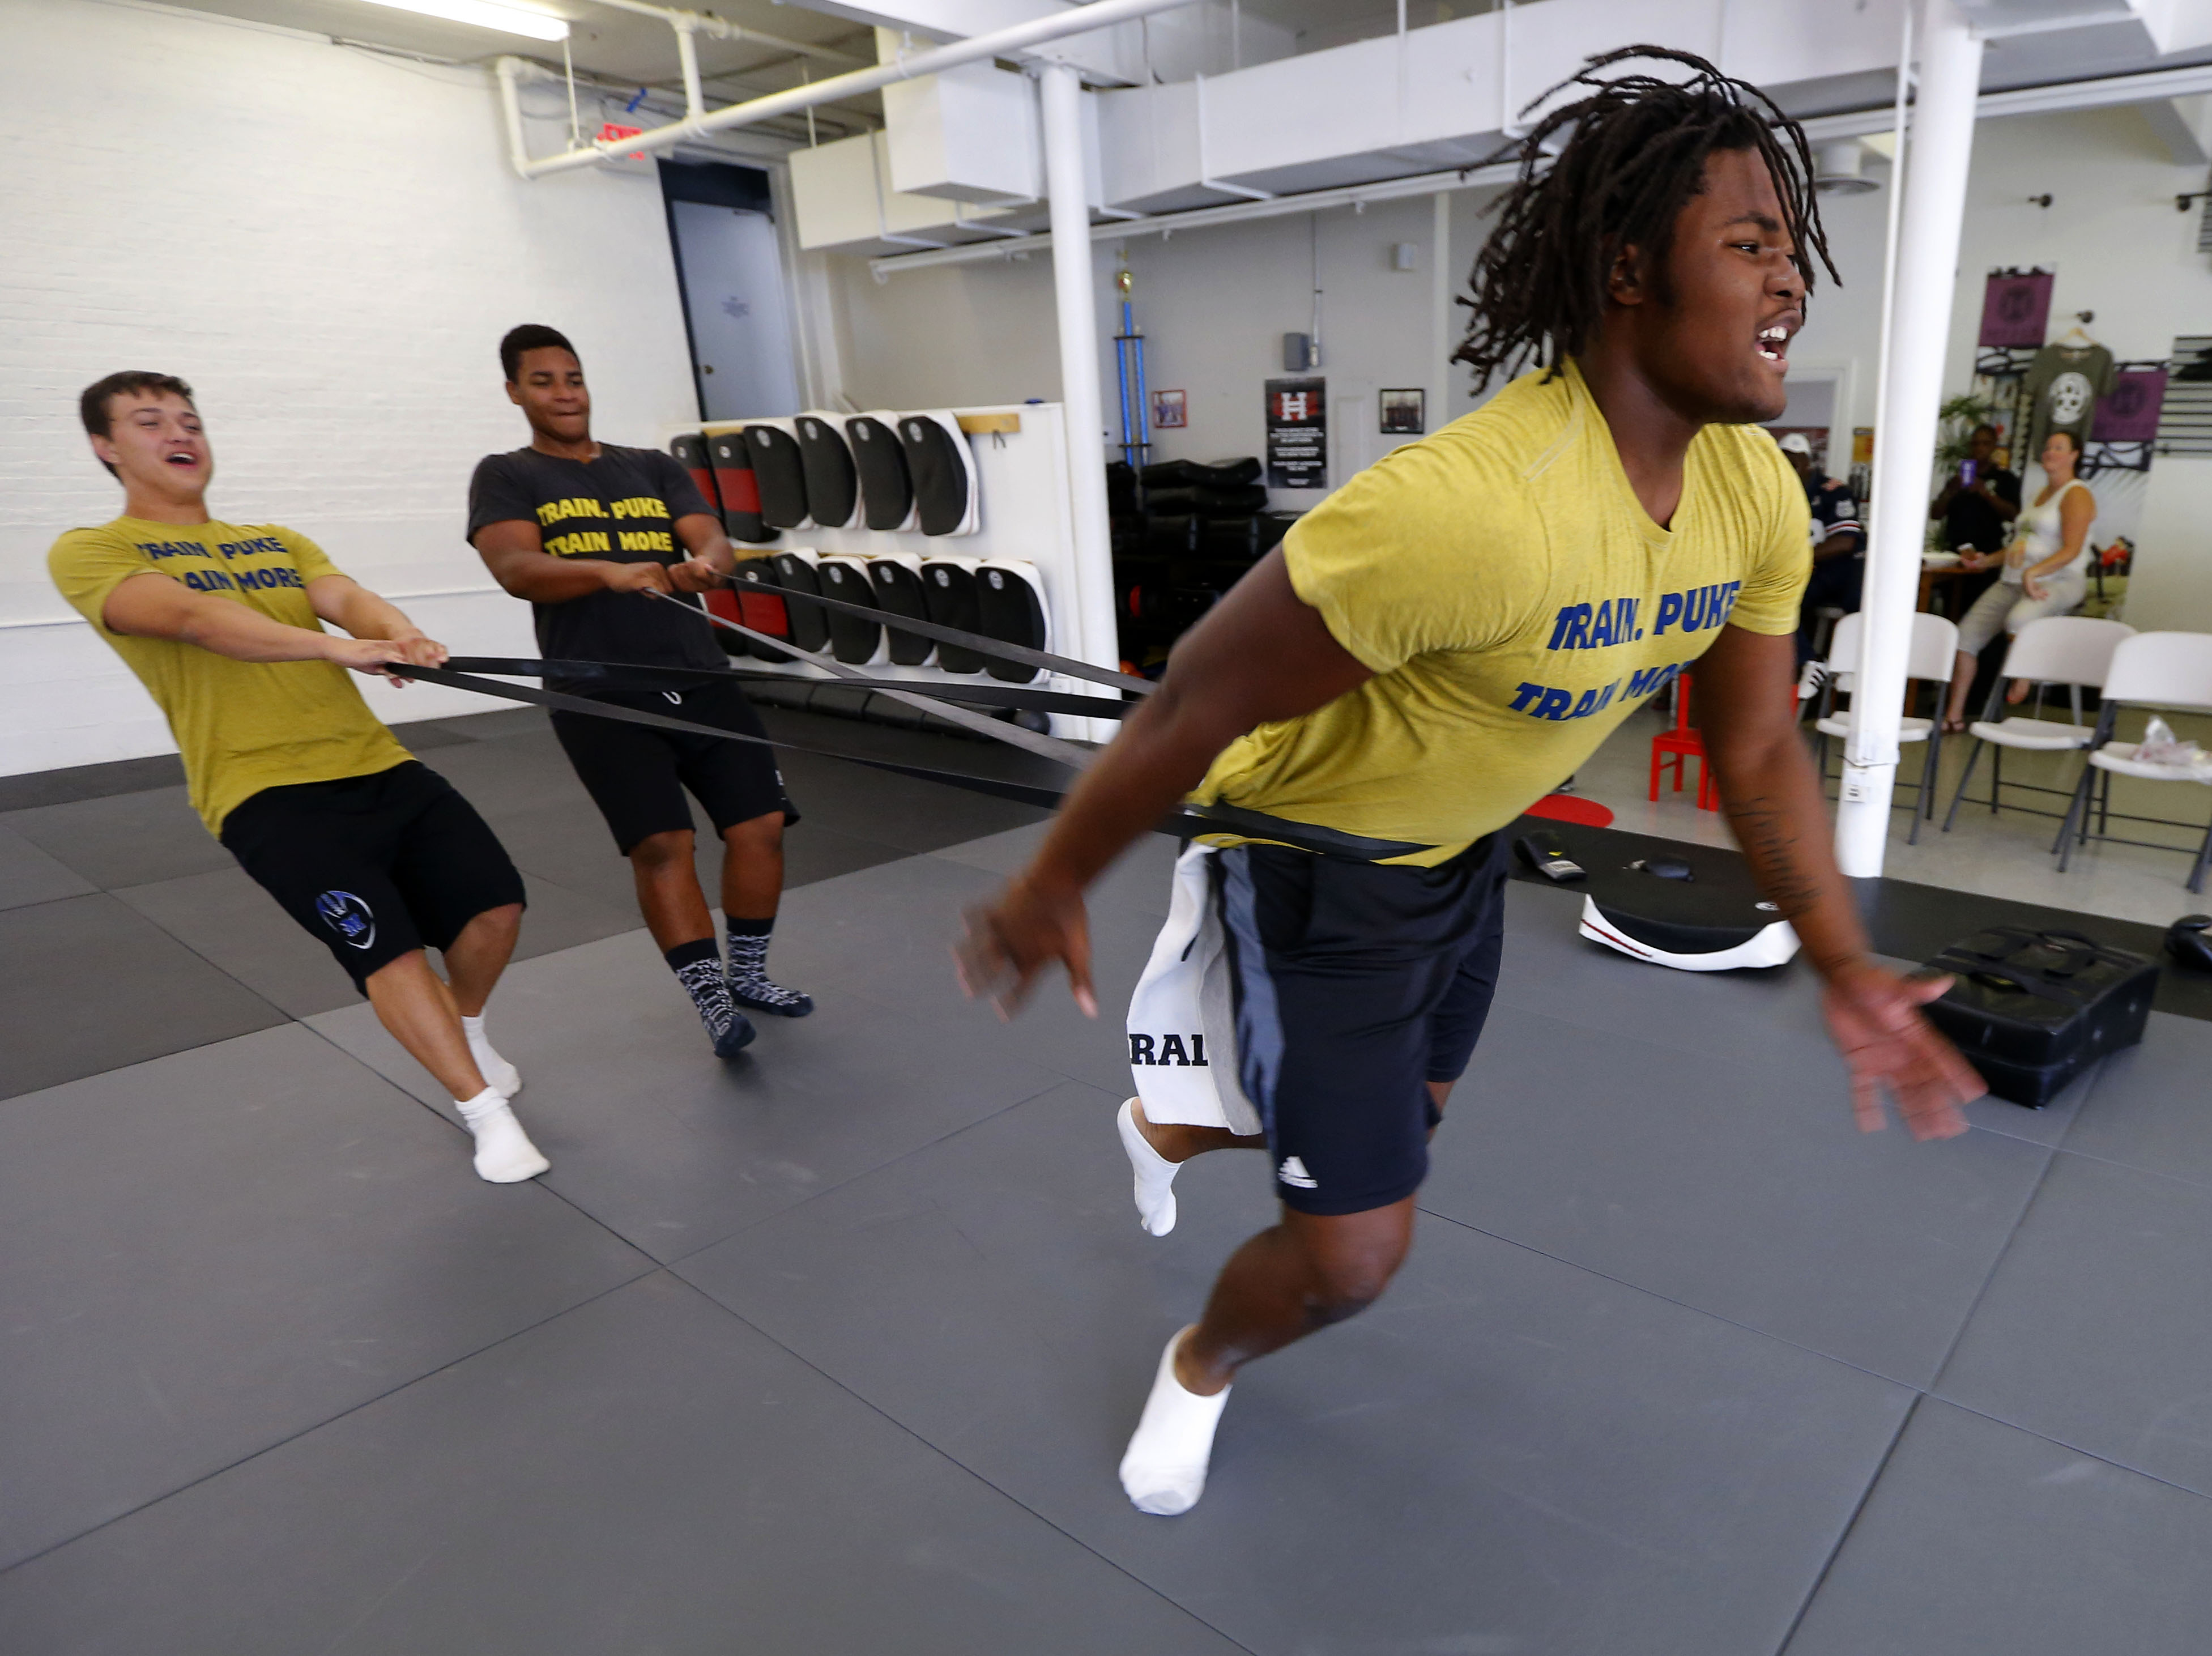 Kevin Ambicki of Middlesex,N.J. and Kevin Knight of North Plainfield, N.J. hold double bands during workout with No. 1 recruit, defensive end Rashan Gary of Paramus Catholic (Paramus, N.J.), and strength trainer, Dwayne Riggins (Photo: Noah K. Murray, USA TODAY Sports)